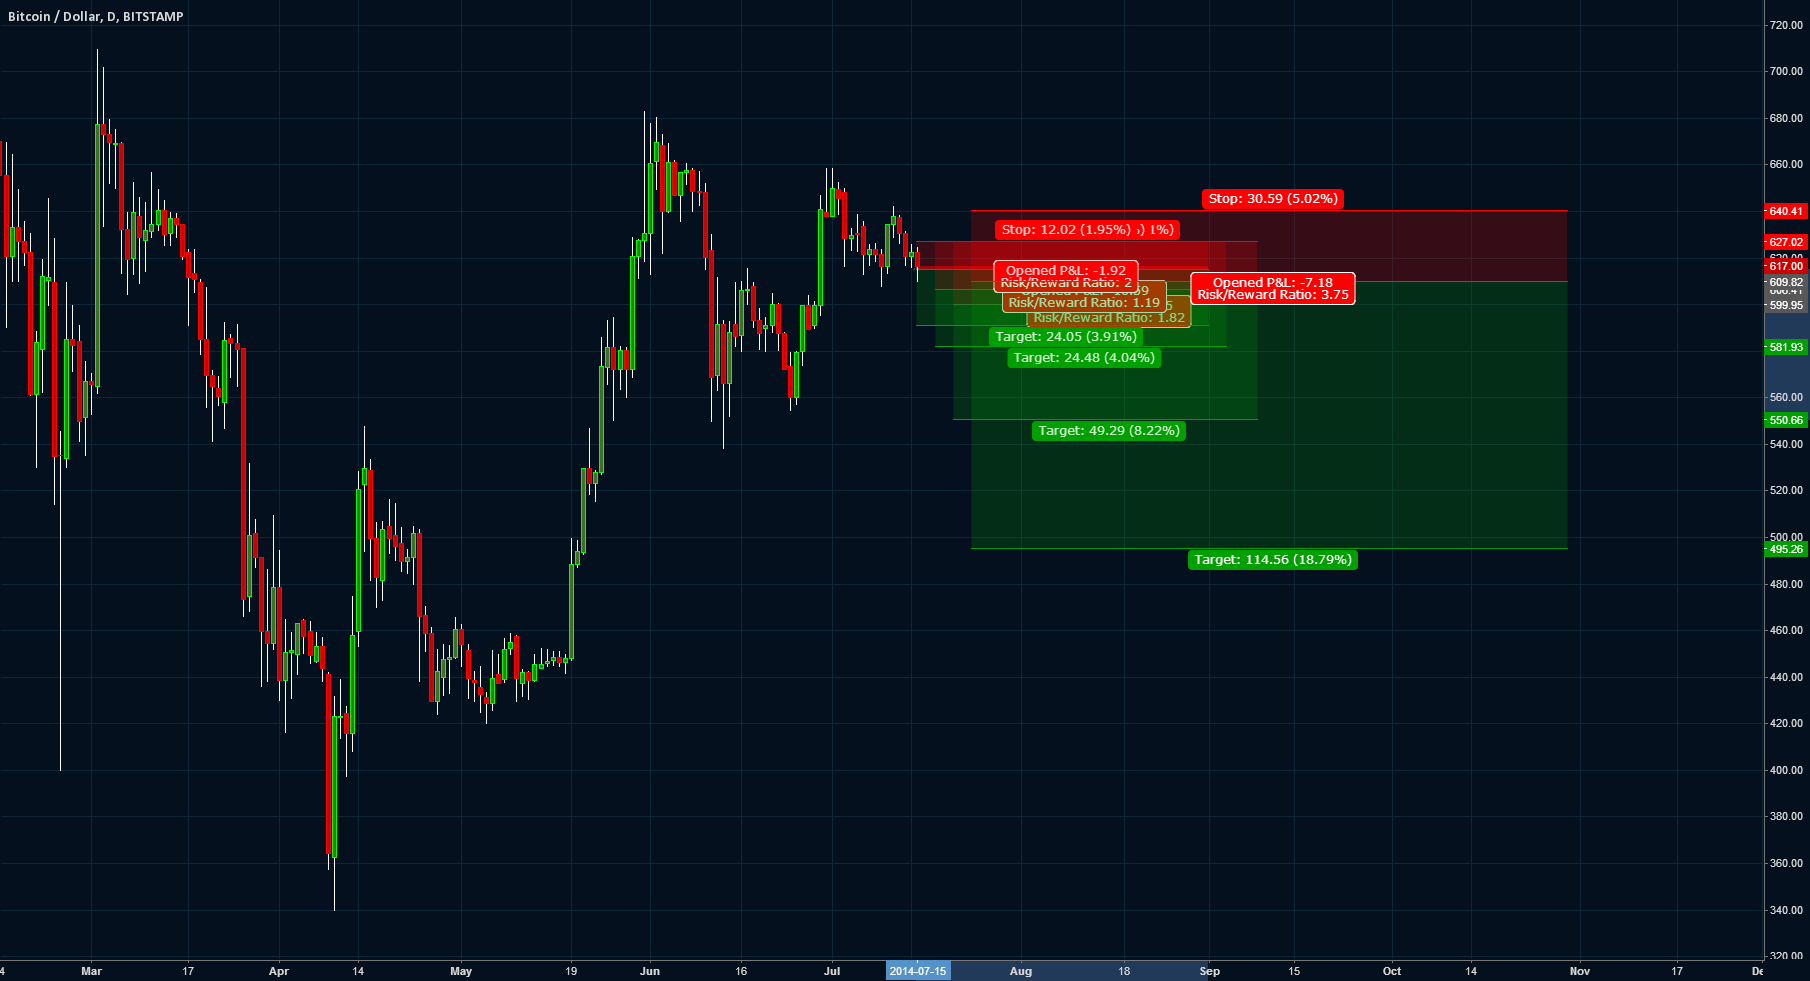 3 Bitcoin short targets and a Buddha quote